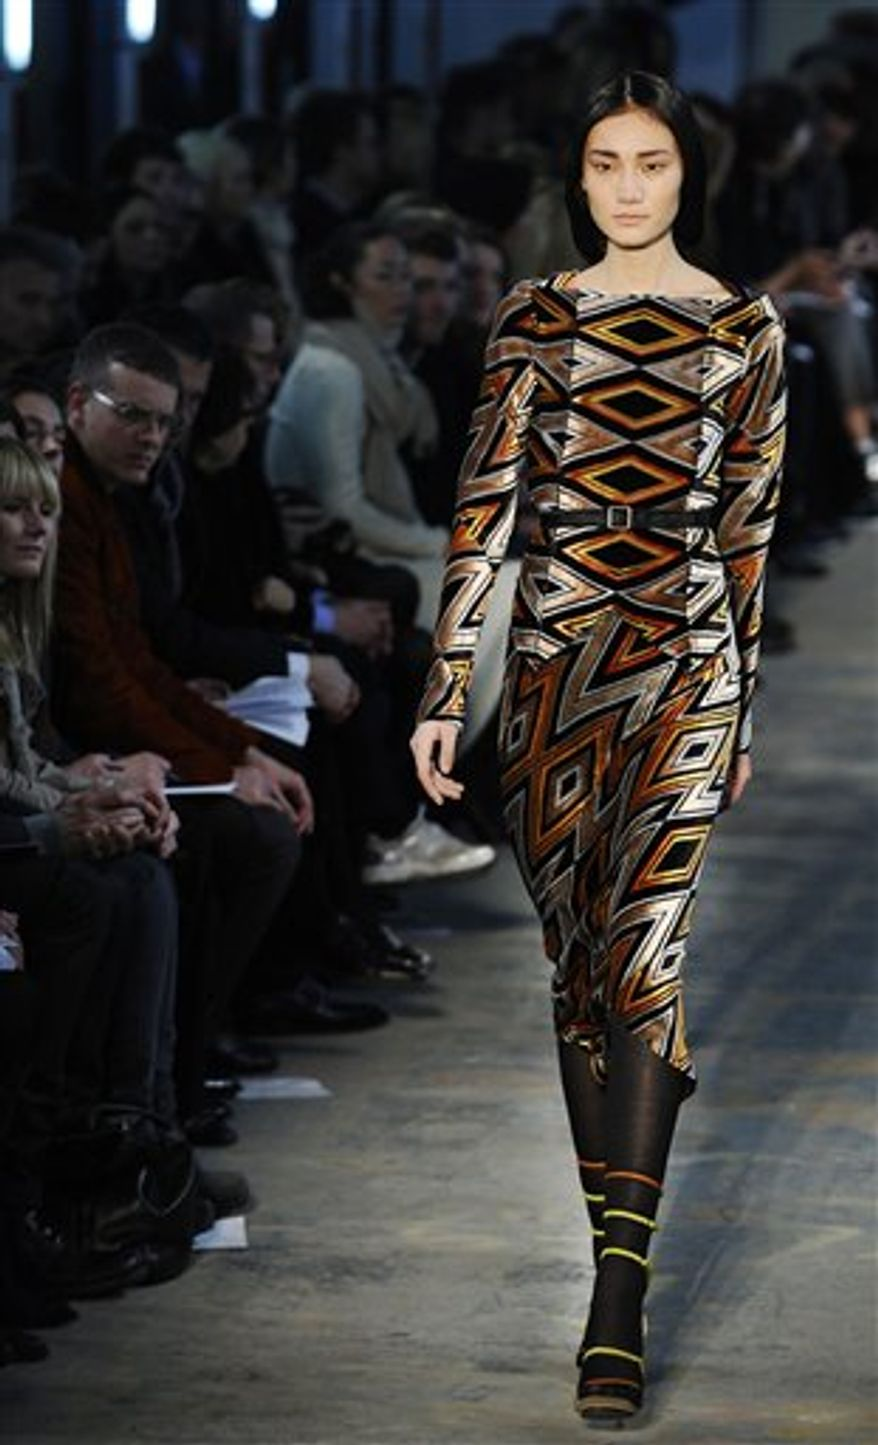 Fall 2011 fashion from designer Proenza Schouler is modeled during Fashion Week Wednesday, Feb. 16, 2011 in New York. (AP Photo/Stephen Chernin)